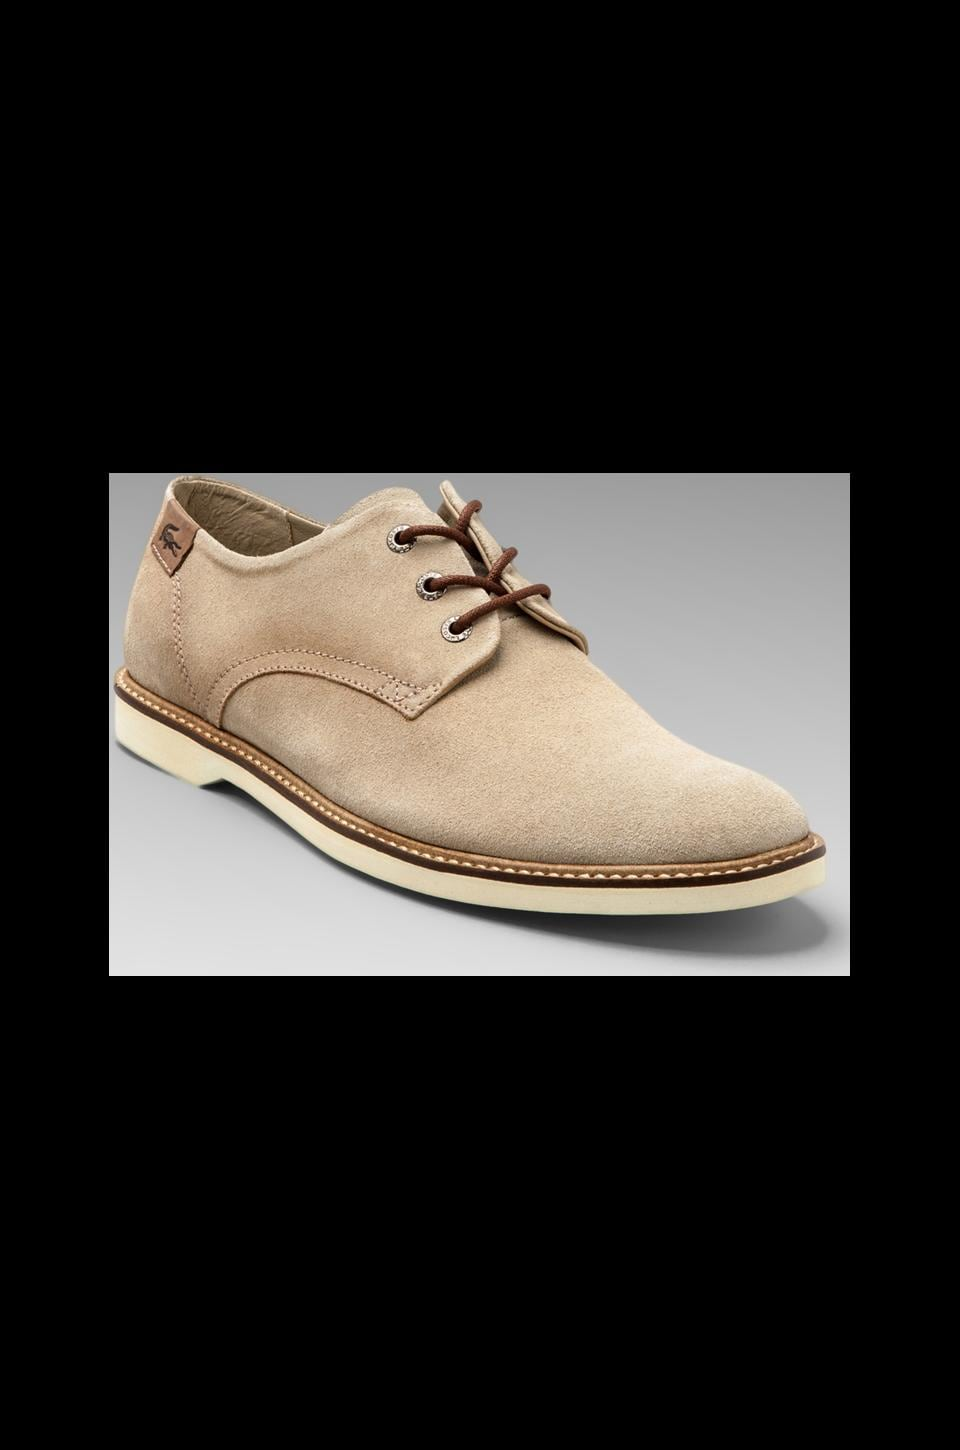 Lacoste Sherbrooke 8 in Tan